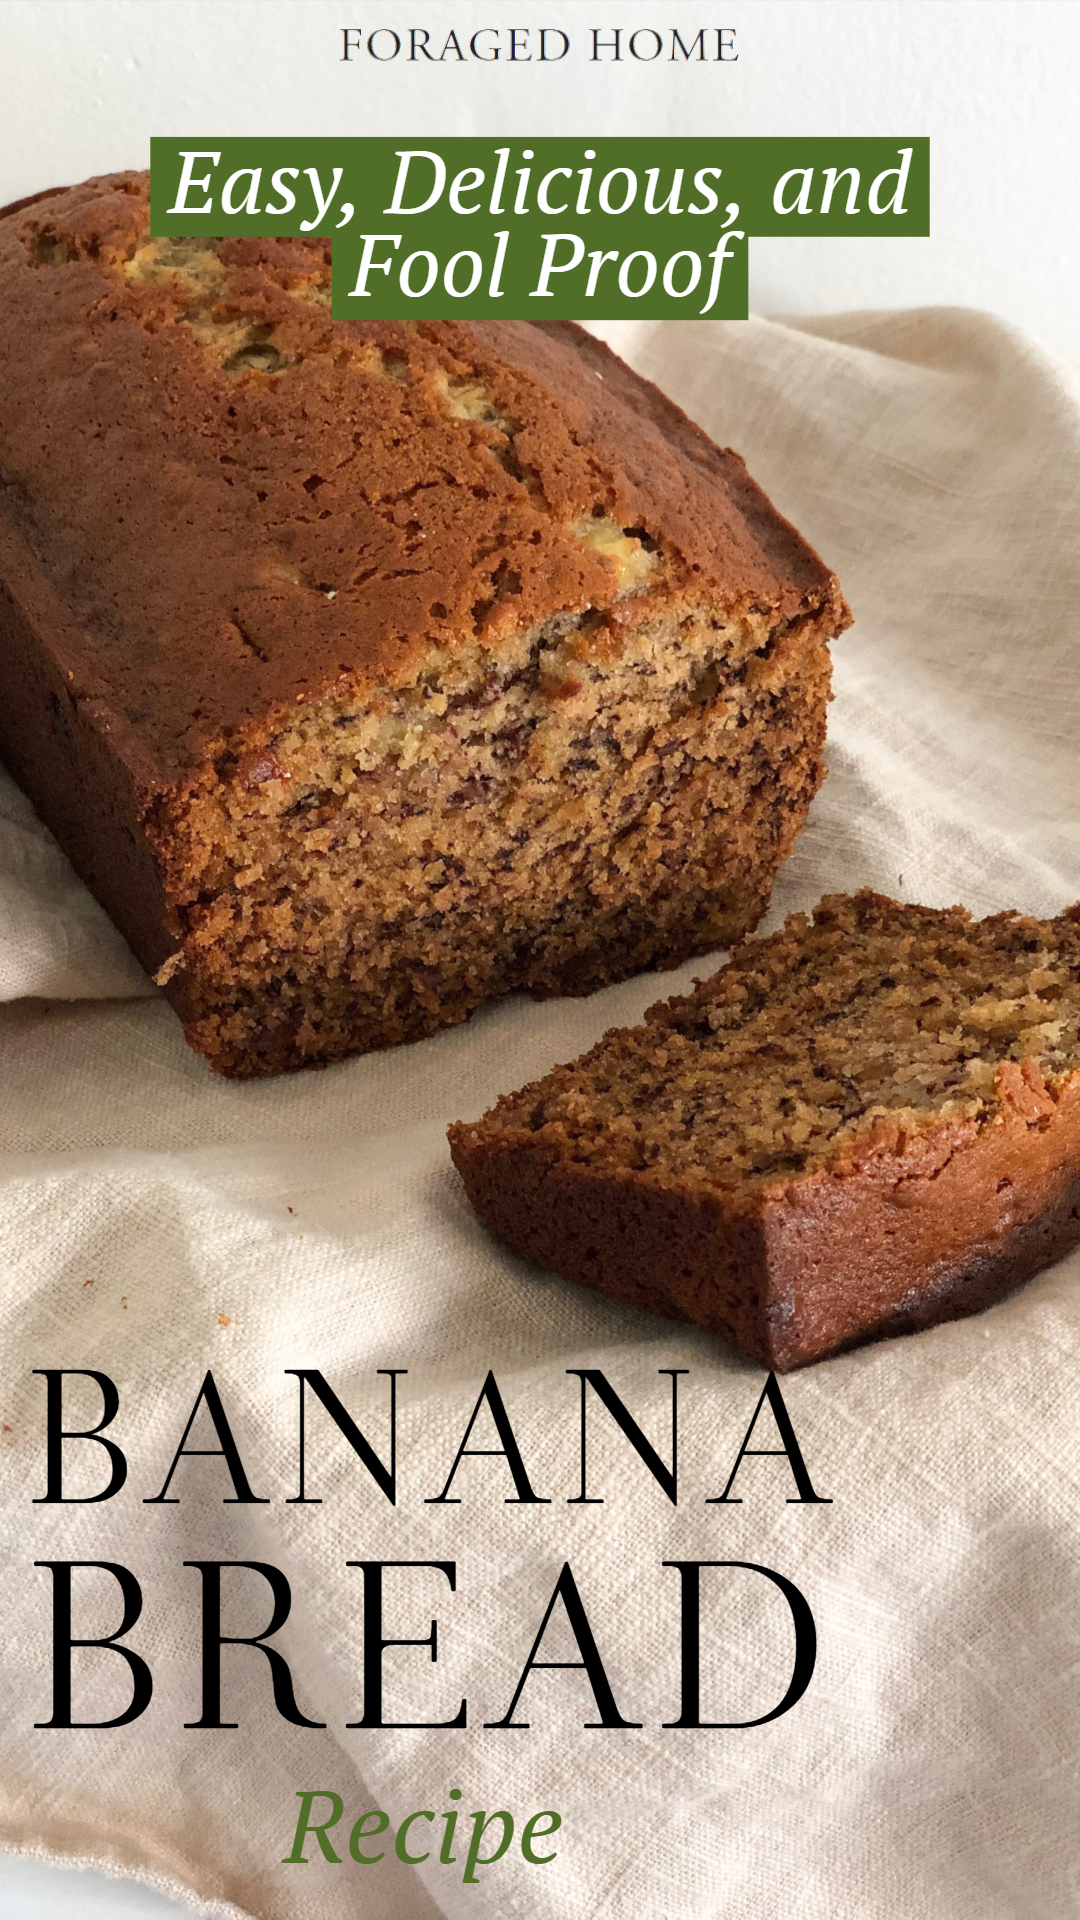 Easy, Delicious and Fool proof banana bread recipe from Foragedhome #bananabread #bananarecipes #bestbananabread